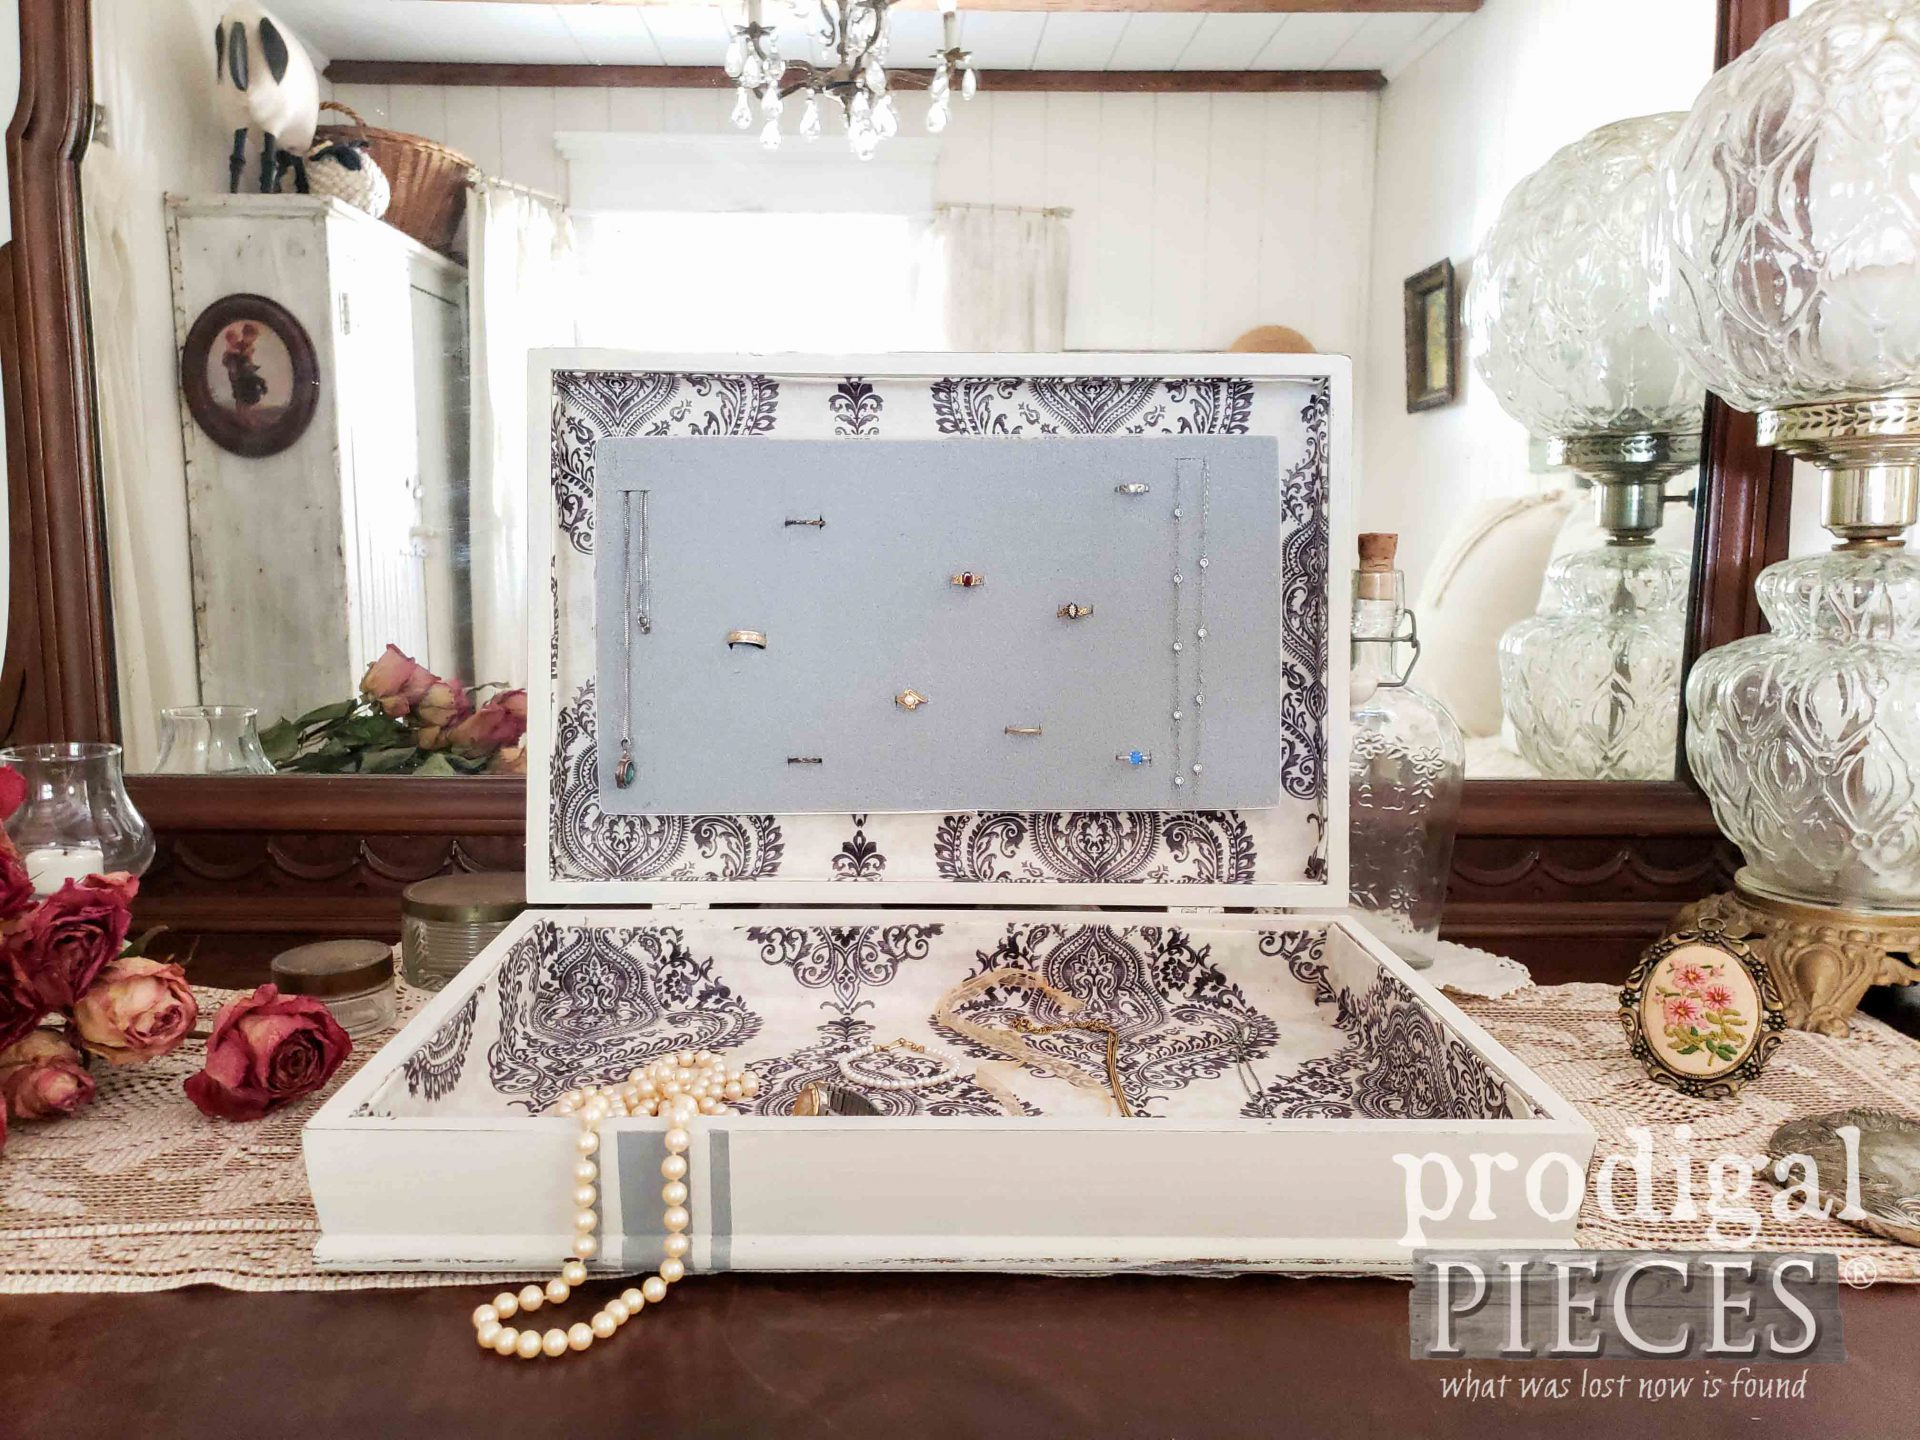 French Style Jewelry Box with Ring Holder by Prodigal Pieces | prodigalpieces.com #prodigalpieces #jewelry #home #homedecor